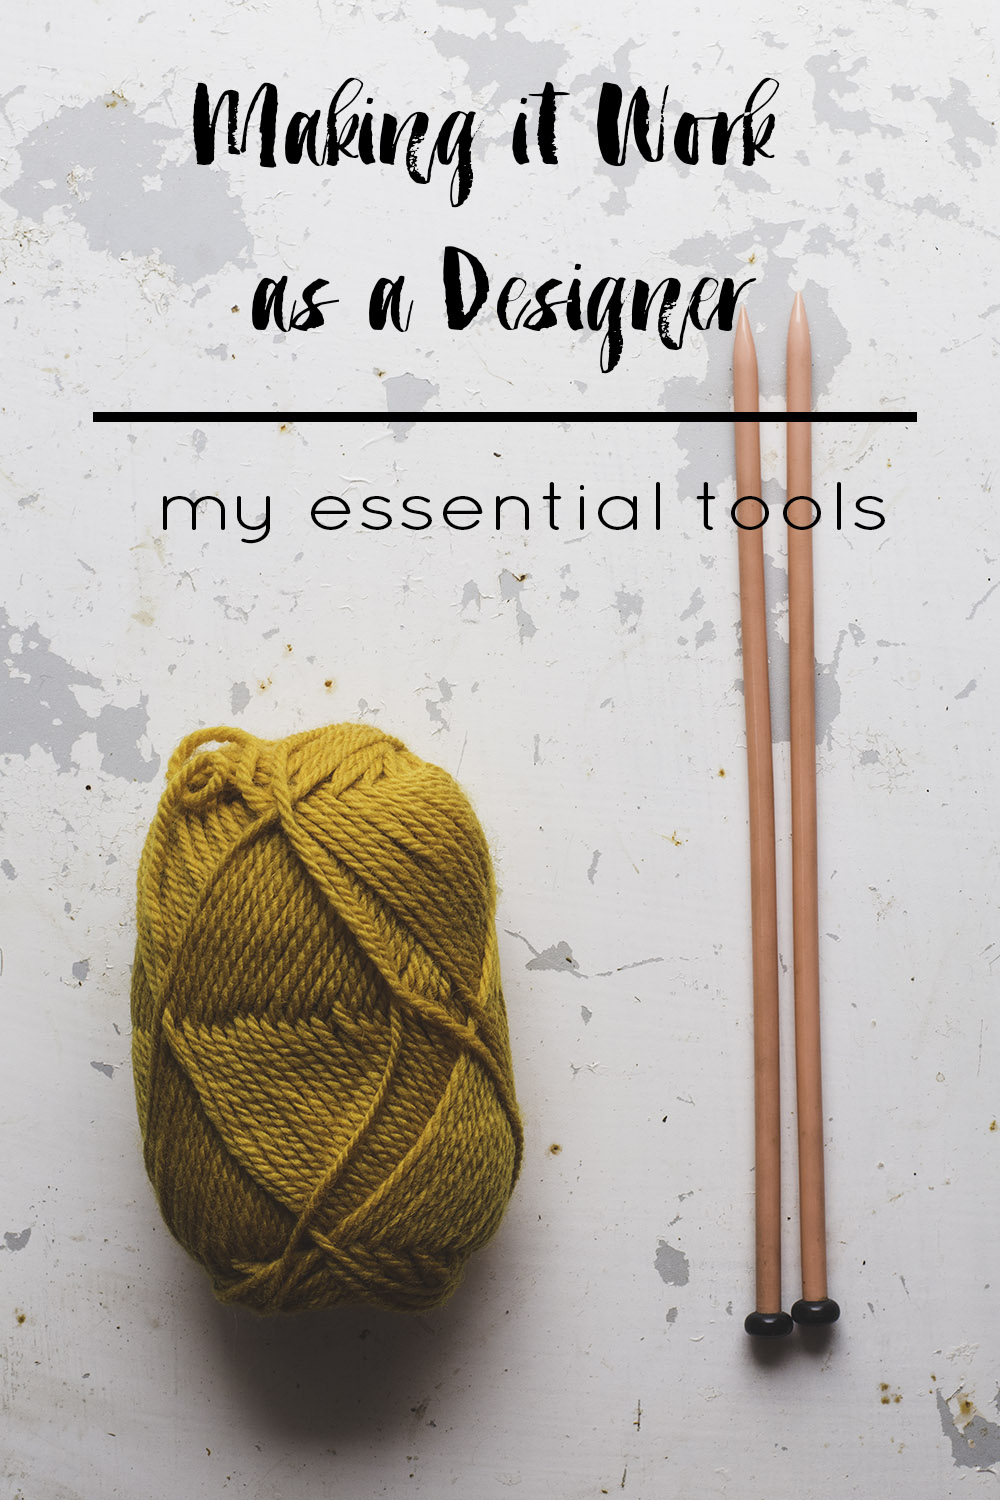 Making it work as a designer my essential tools